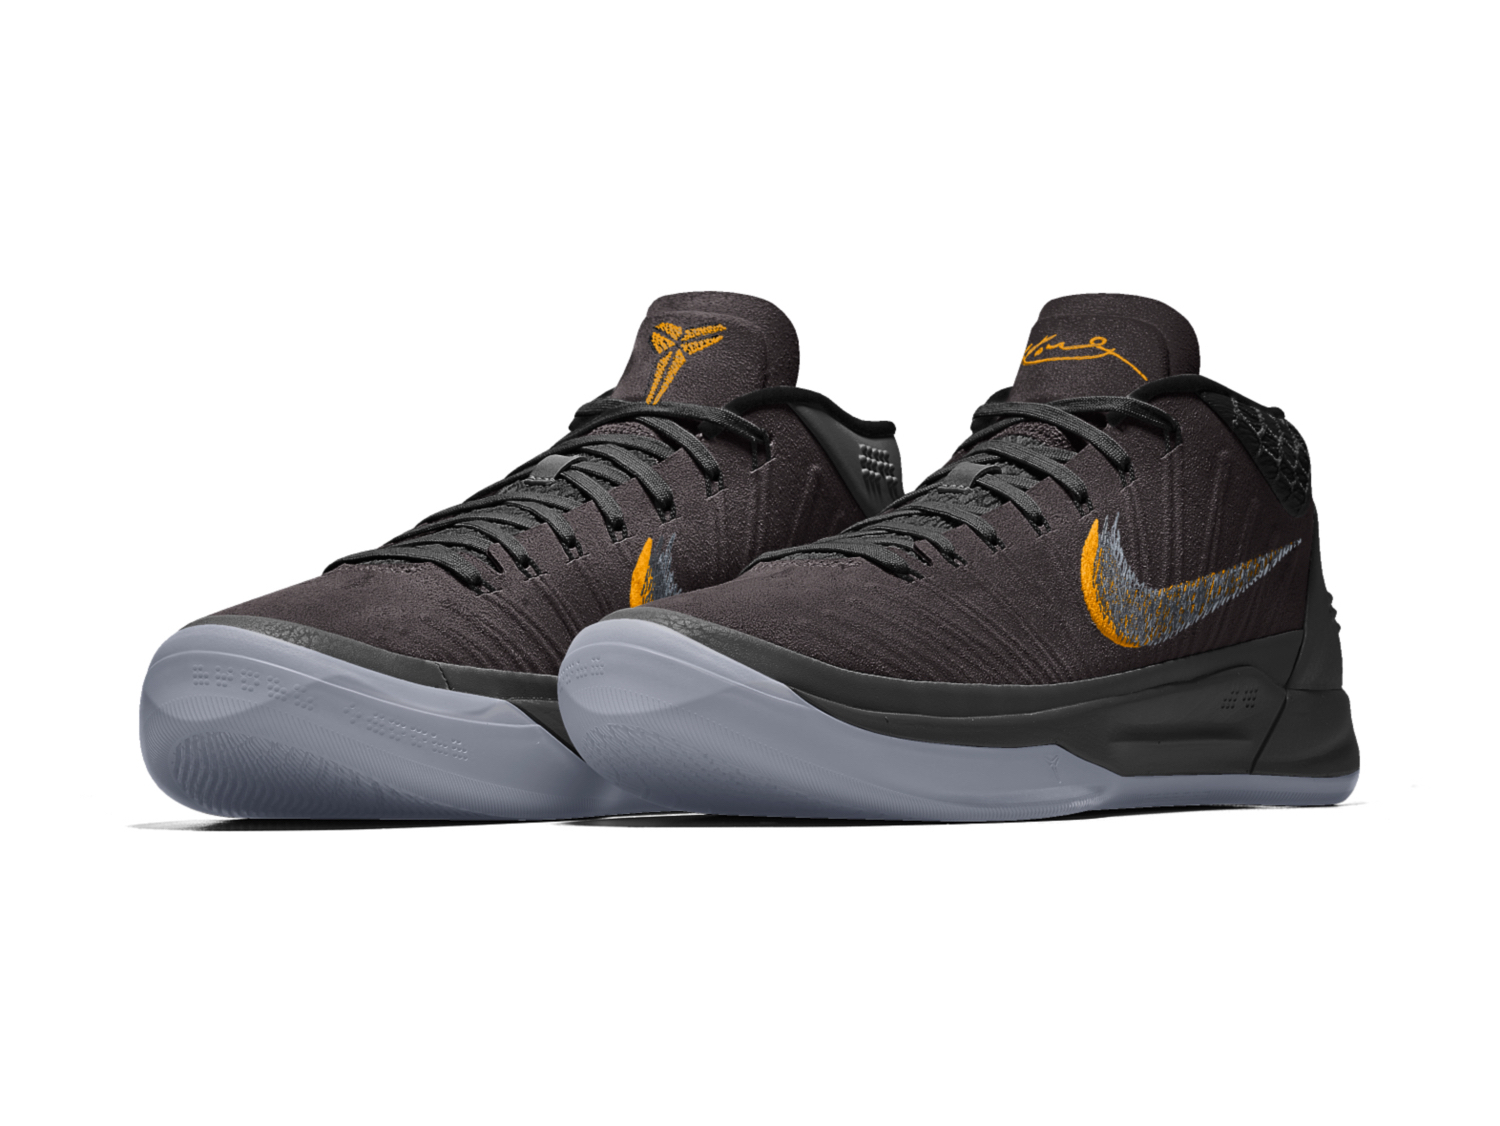 fa08bb2463c You Can Now Customize the Latest Nike Kobe AD on NIKEiD - WearTesters